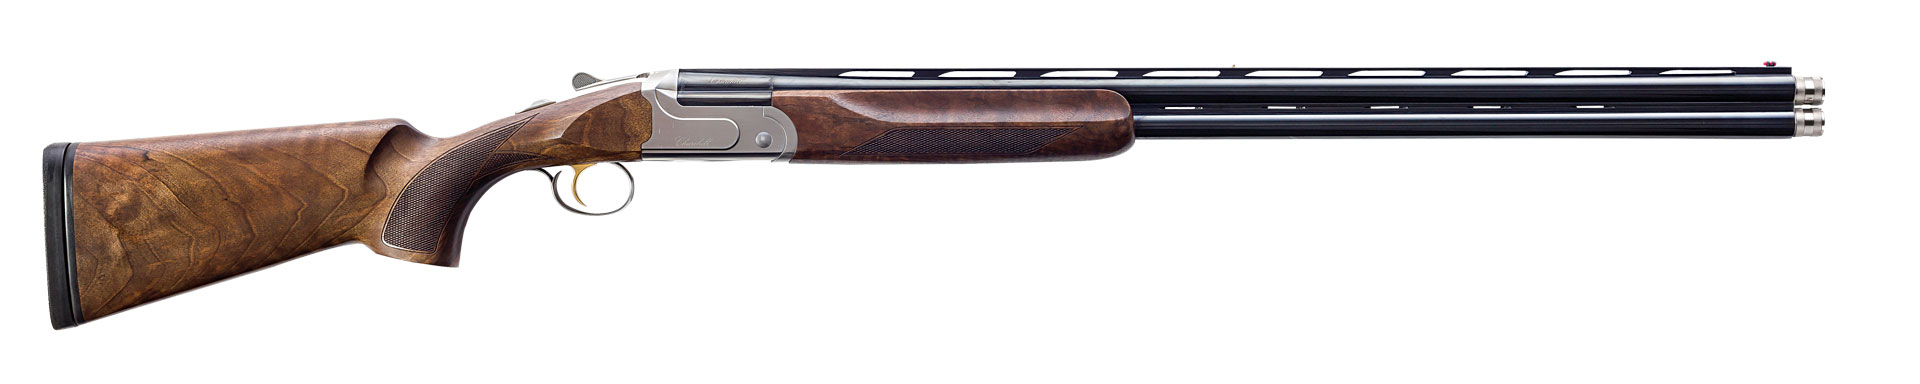 Escopeta Akkar Churchill 206 Hunting Silver 227082 Calibre 12